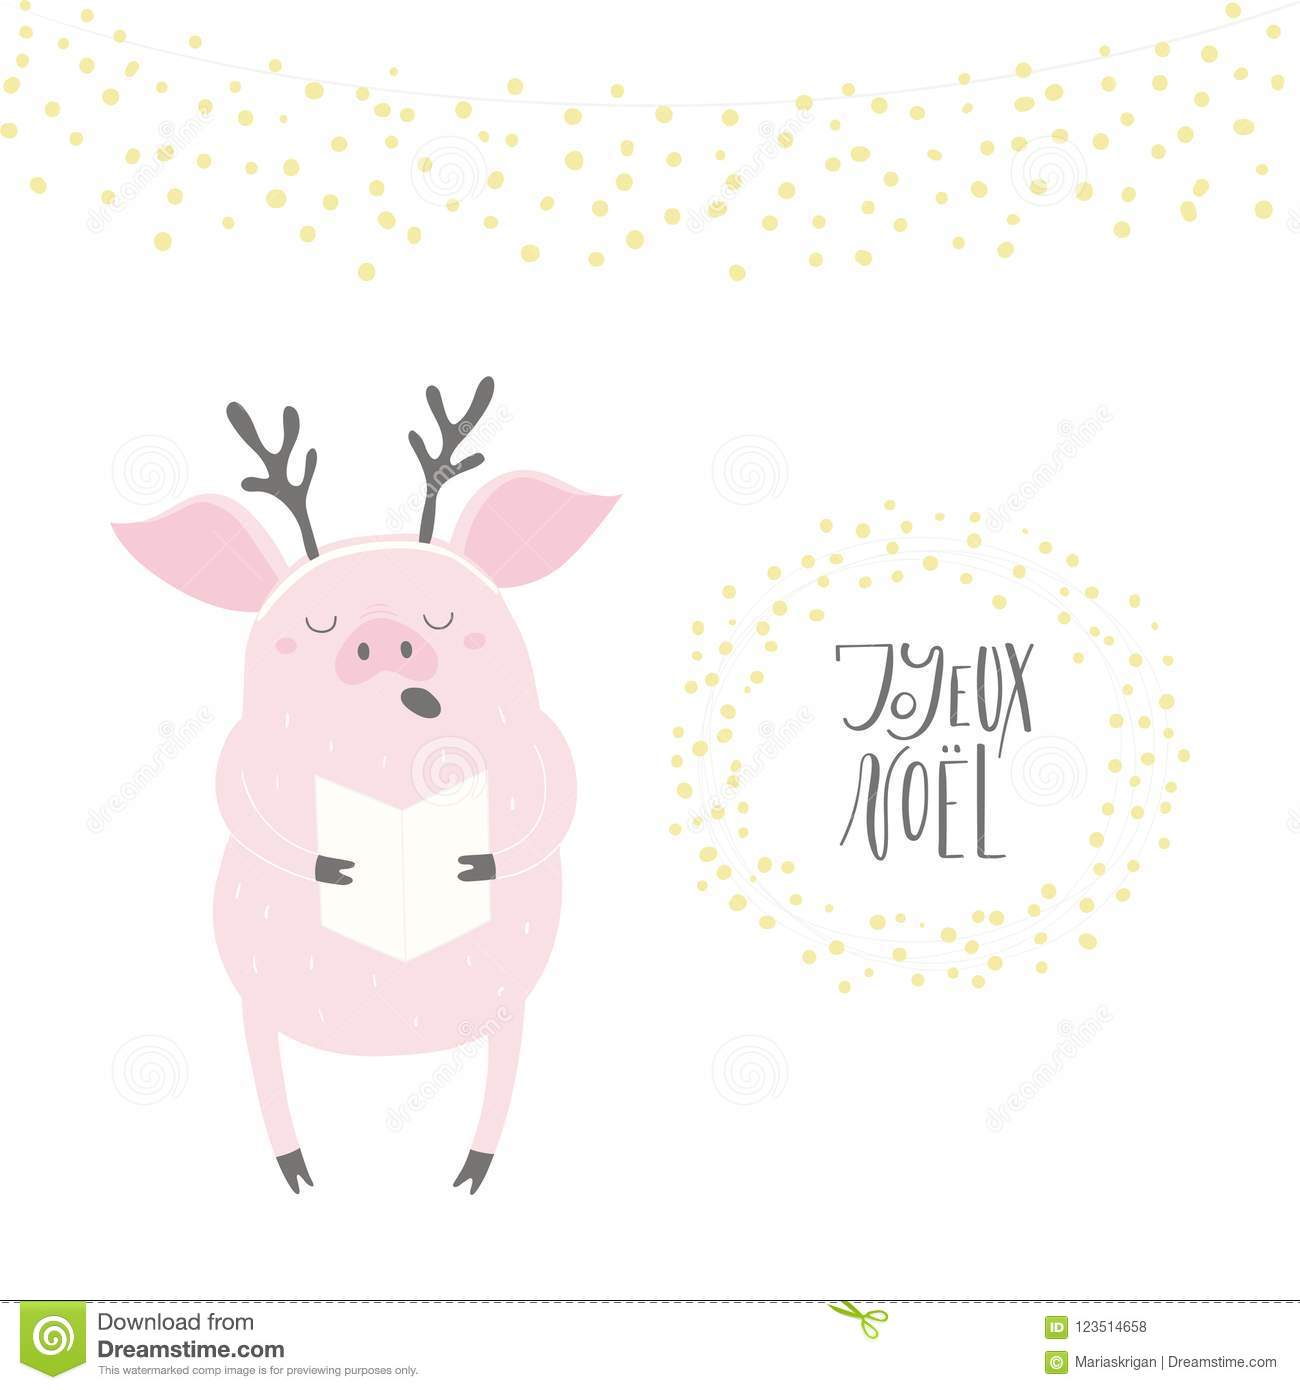 Funny Singing Pig Christmas Card Stock Vector - Illustration of ...